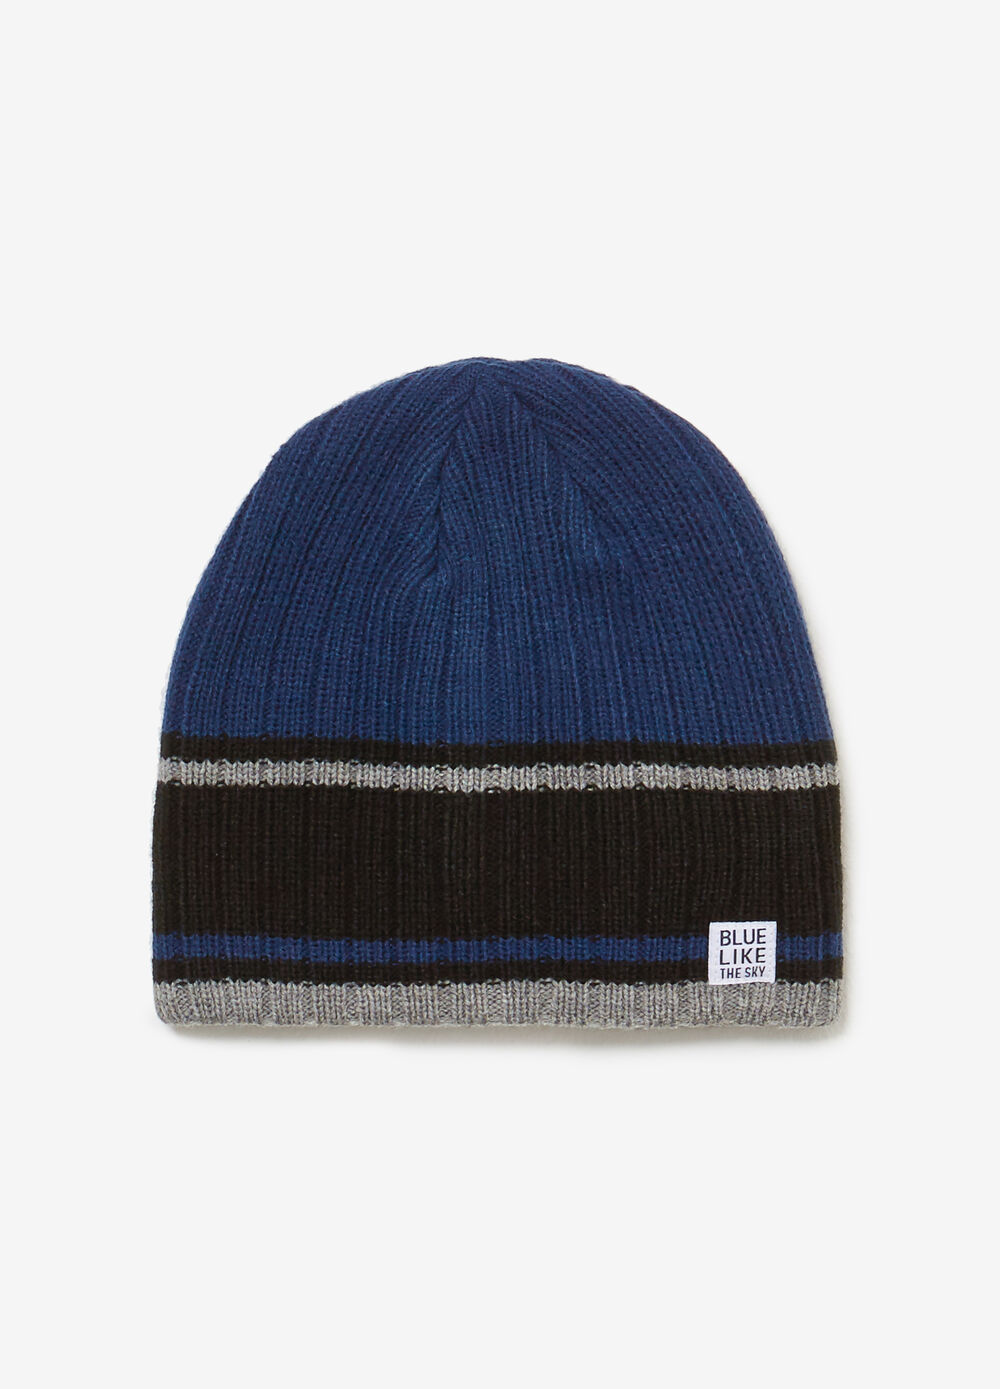 Knitted beanie cap with striped pattern